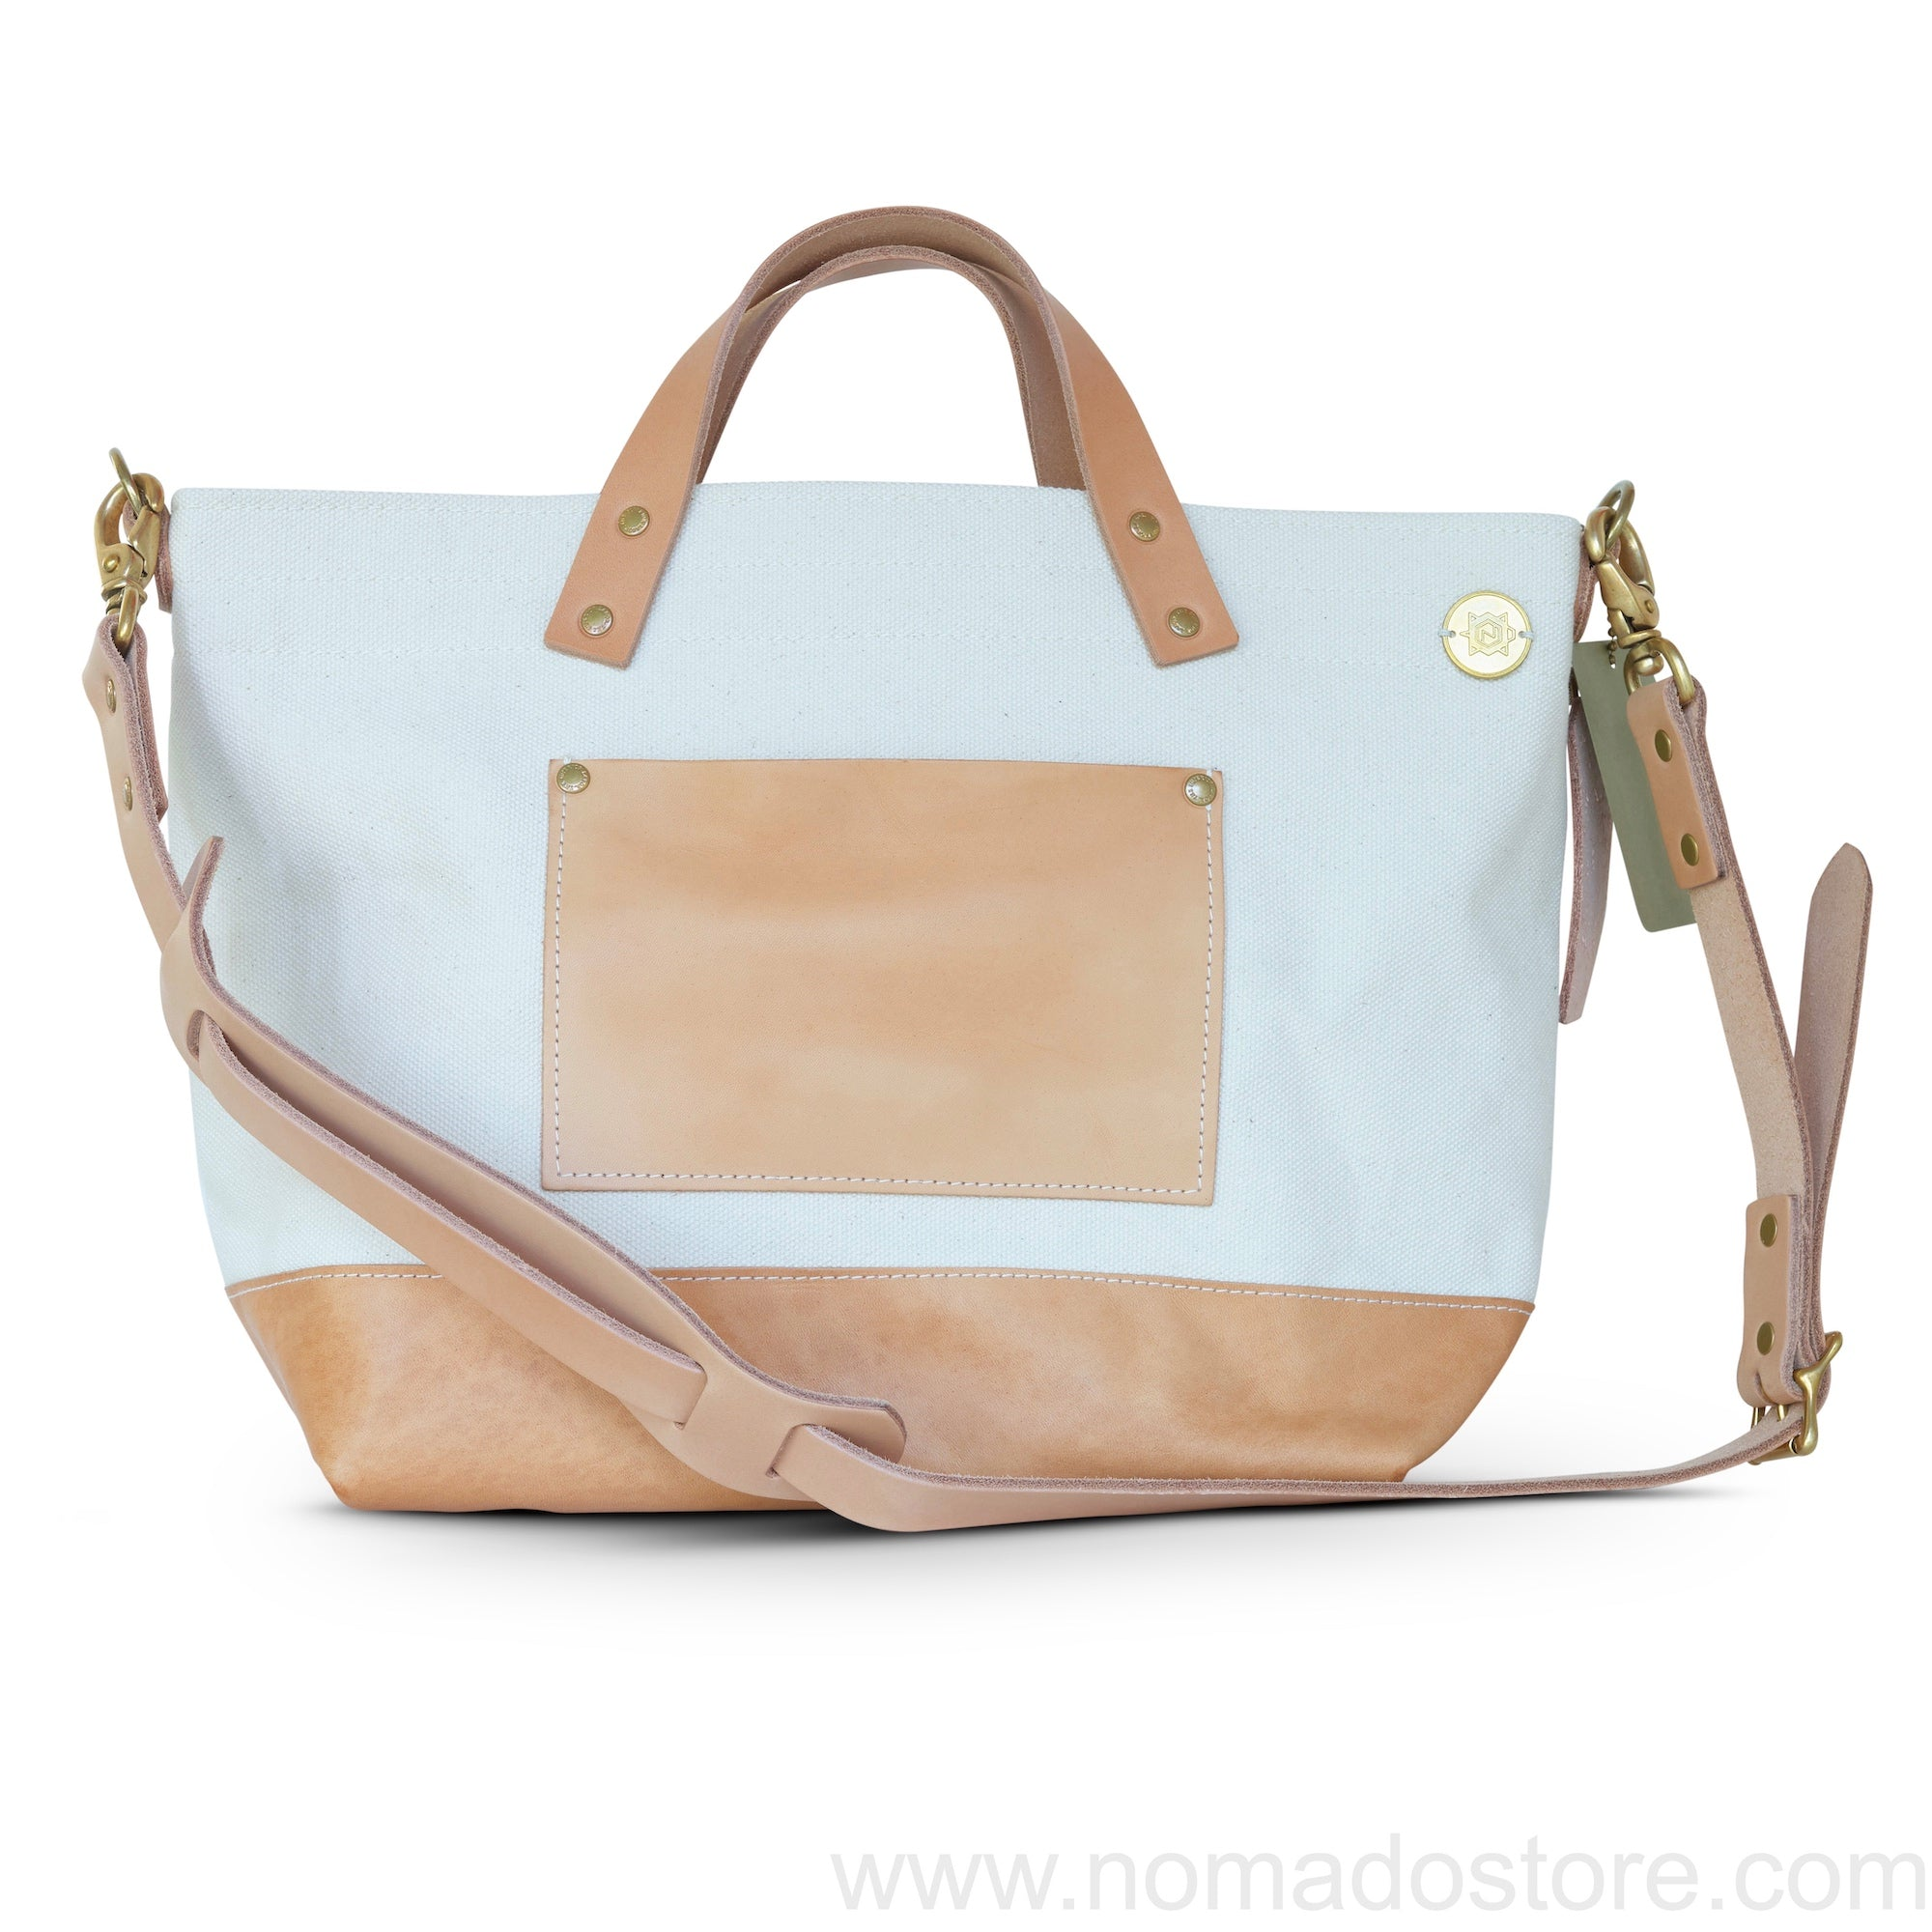 Superior Labor x Nomado Store Engineer Shoulder Bag Compact SE (natural/leather) - NOMADO Store